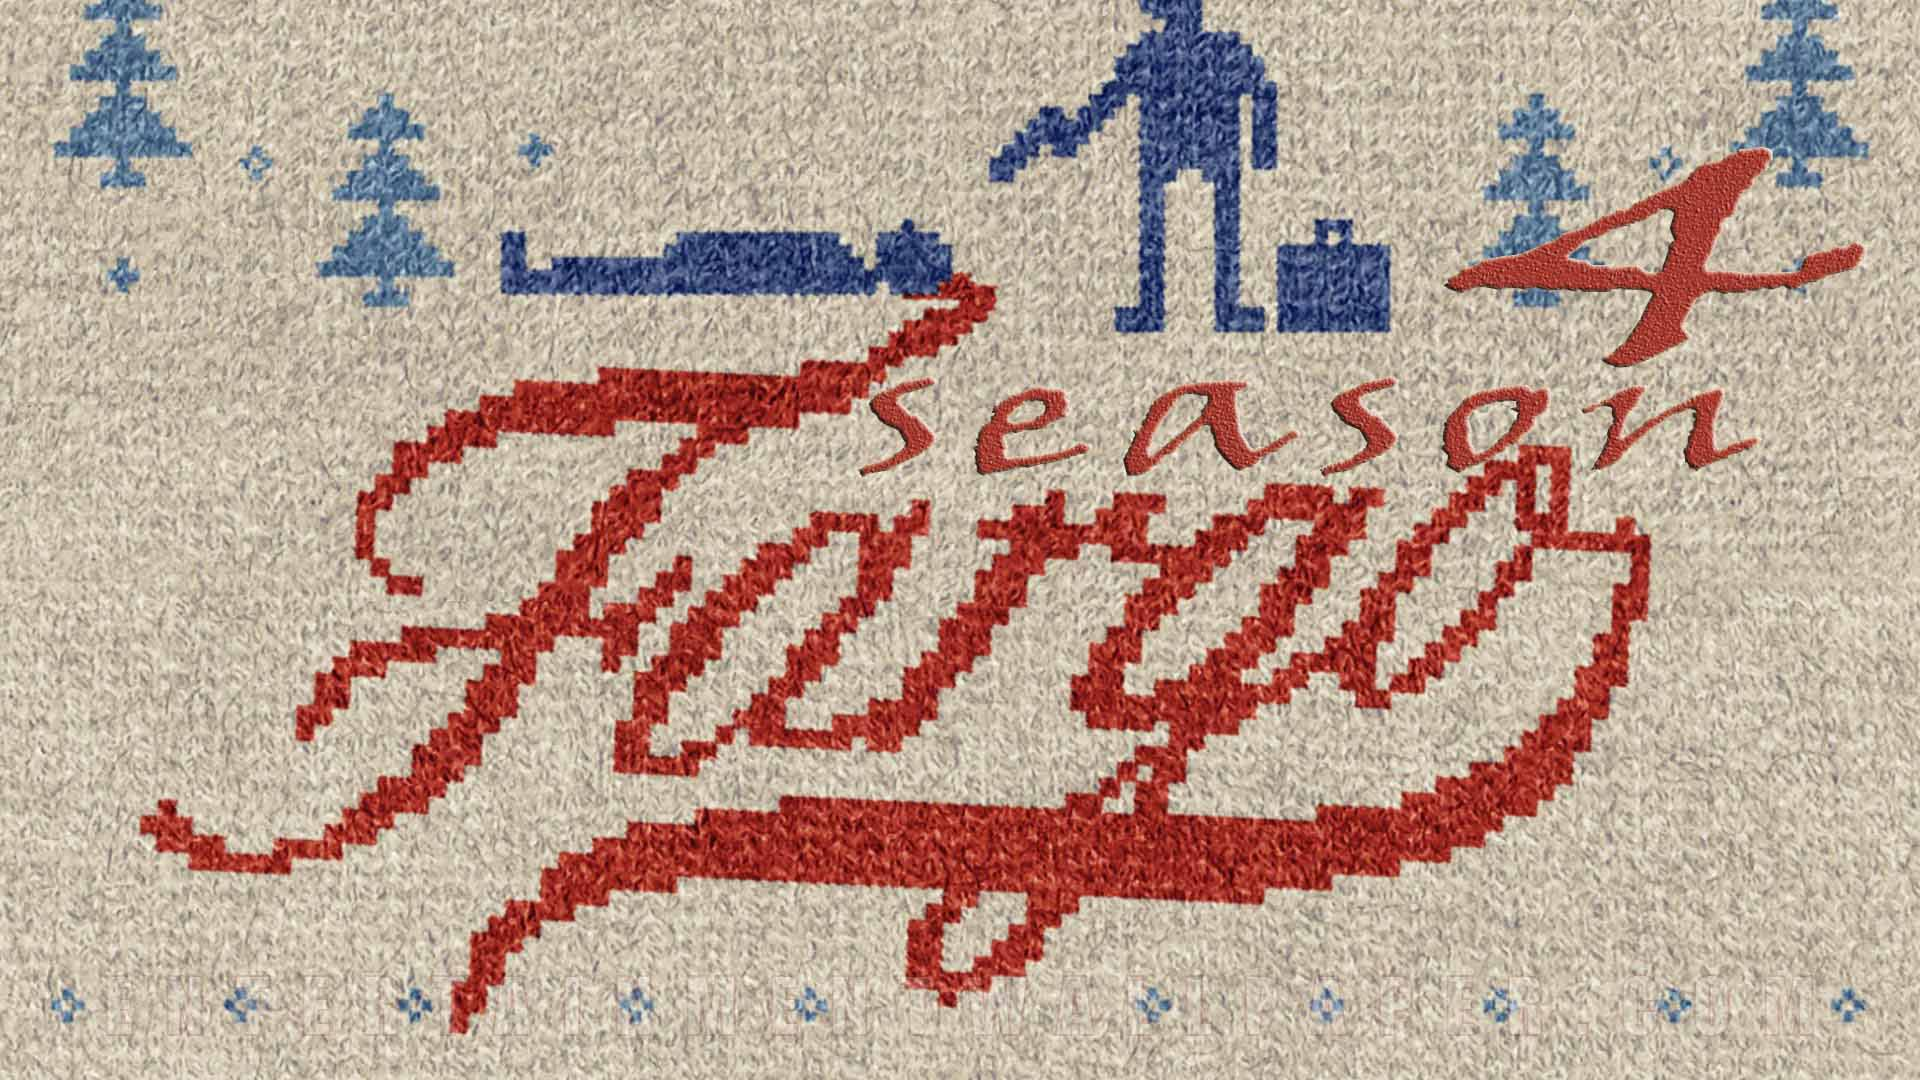 Fargo Season 4 Release Date, Trailer, Cast and Latest News